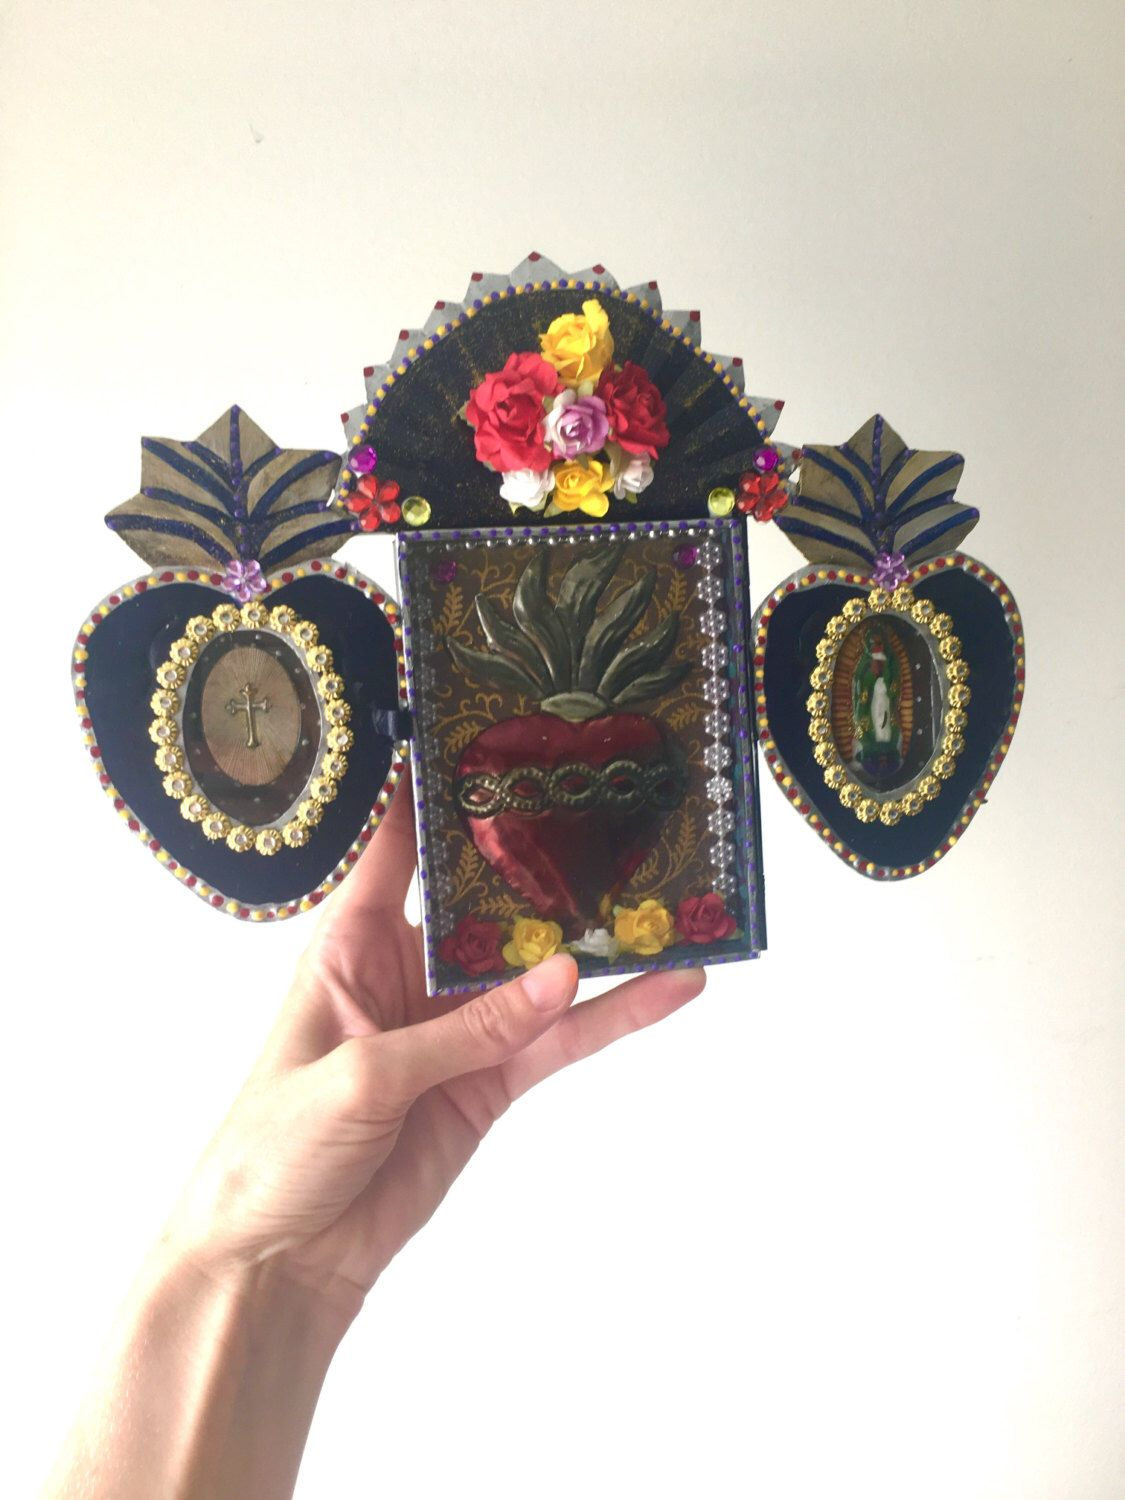 Mexican tin metal nicho shrine shadowbox with tin sacred heart/ Mexican folk art / rustic vintage  / wedding gift / guadalupe metallic by TheVirginRose on Etsy https://www.etsy.com/listing/491463980/mexican-tin-metal-nicho-shrine-shadowbox